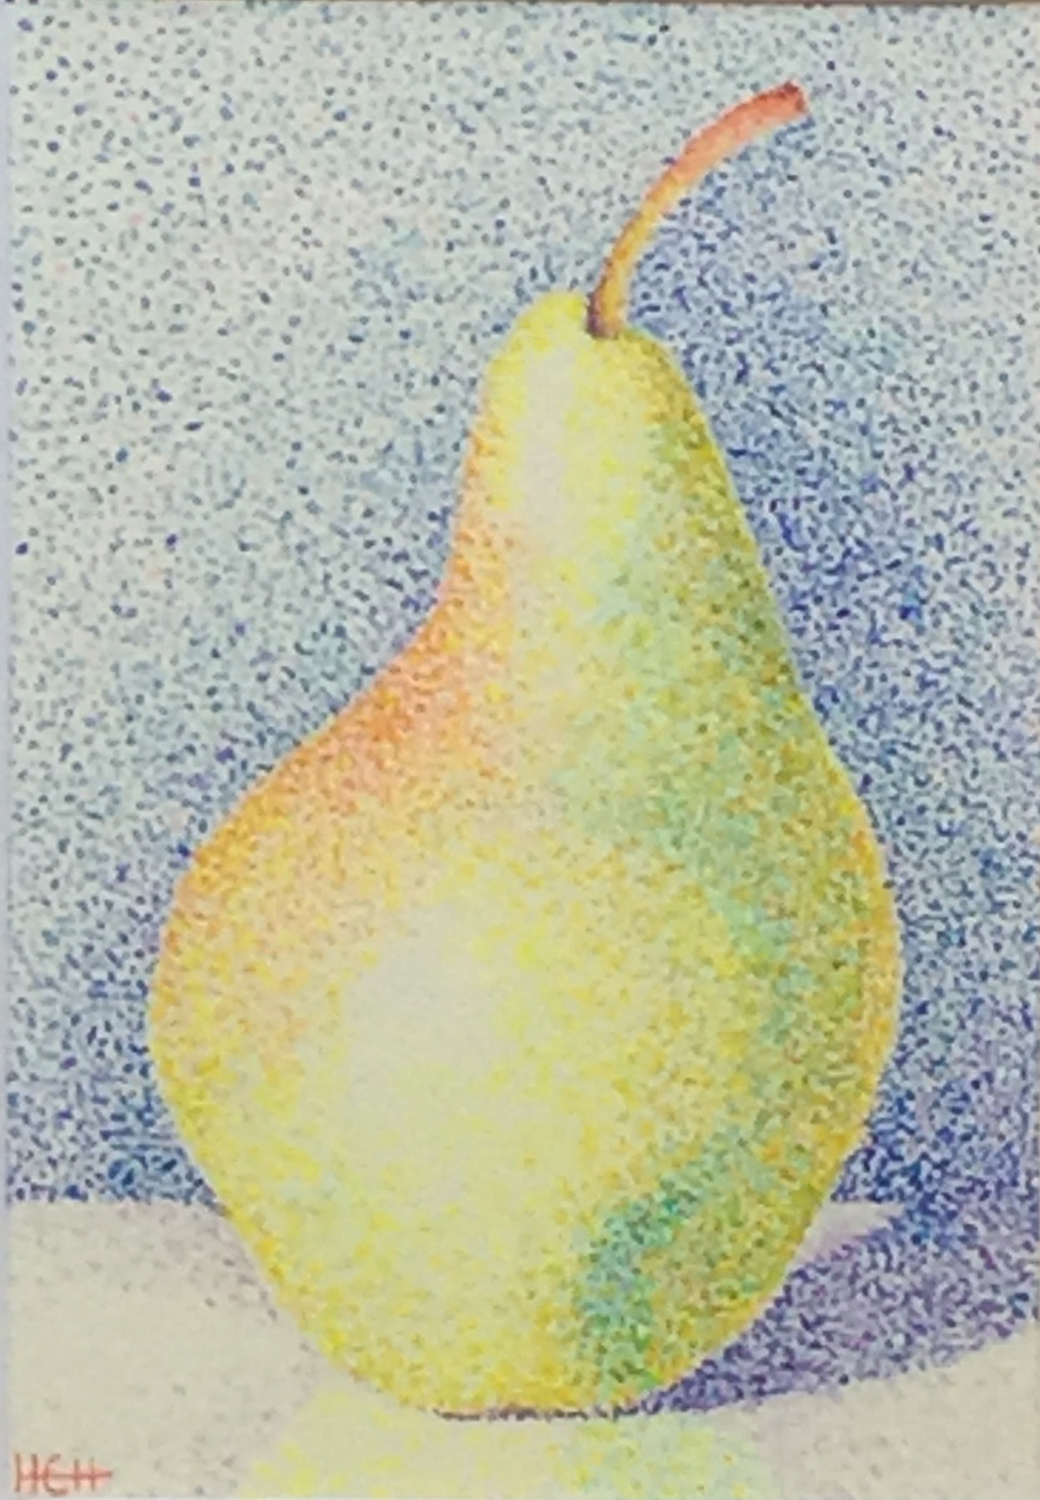 Pear #1 - Harold Ellis Howell